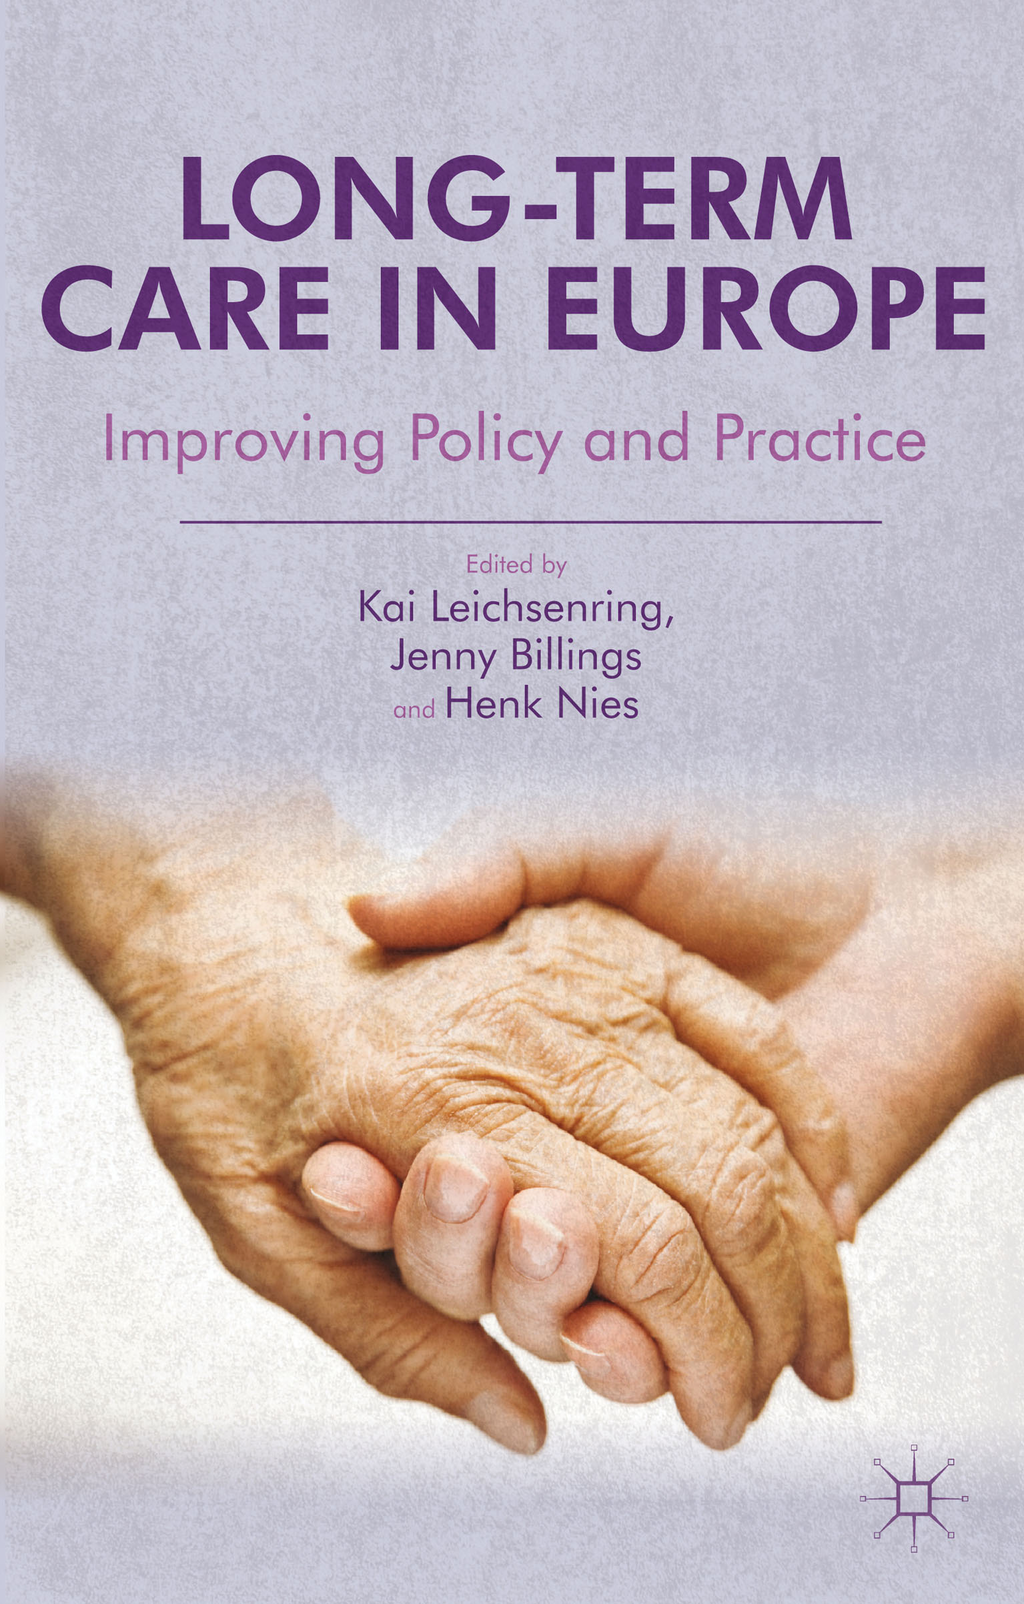 Long-Term Care in Europe Improving Policy and Practice